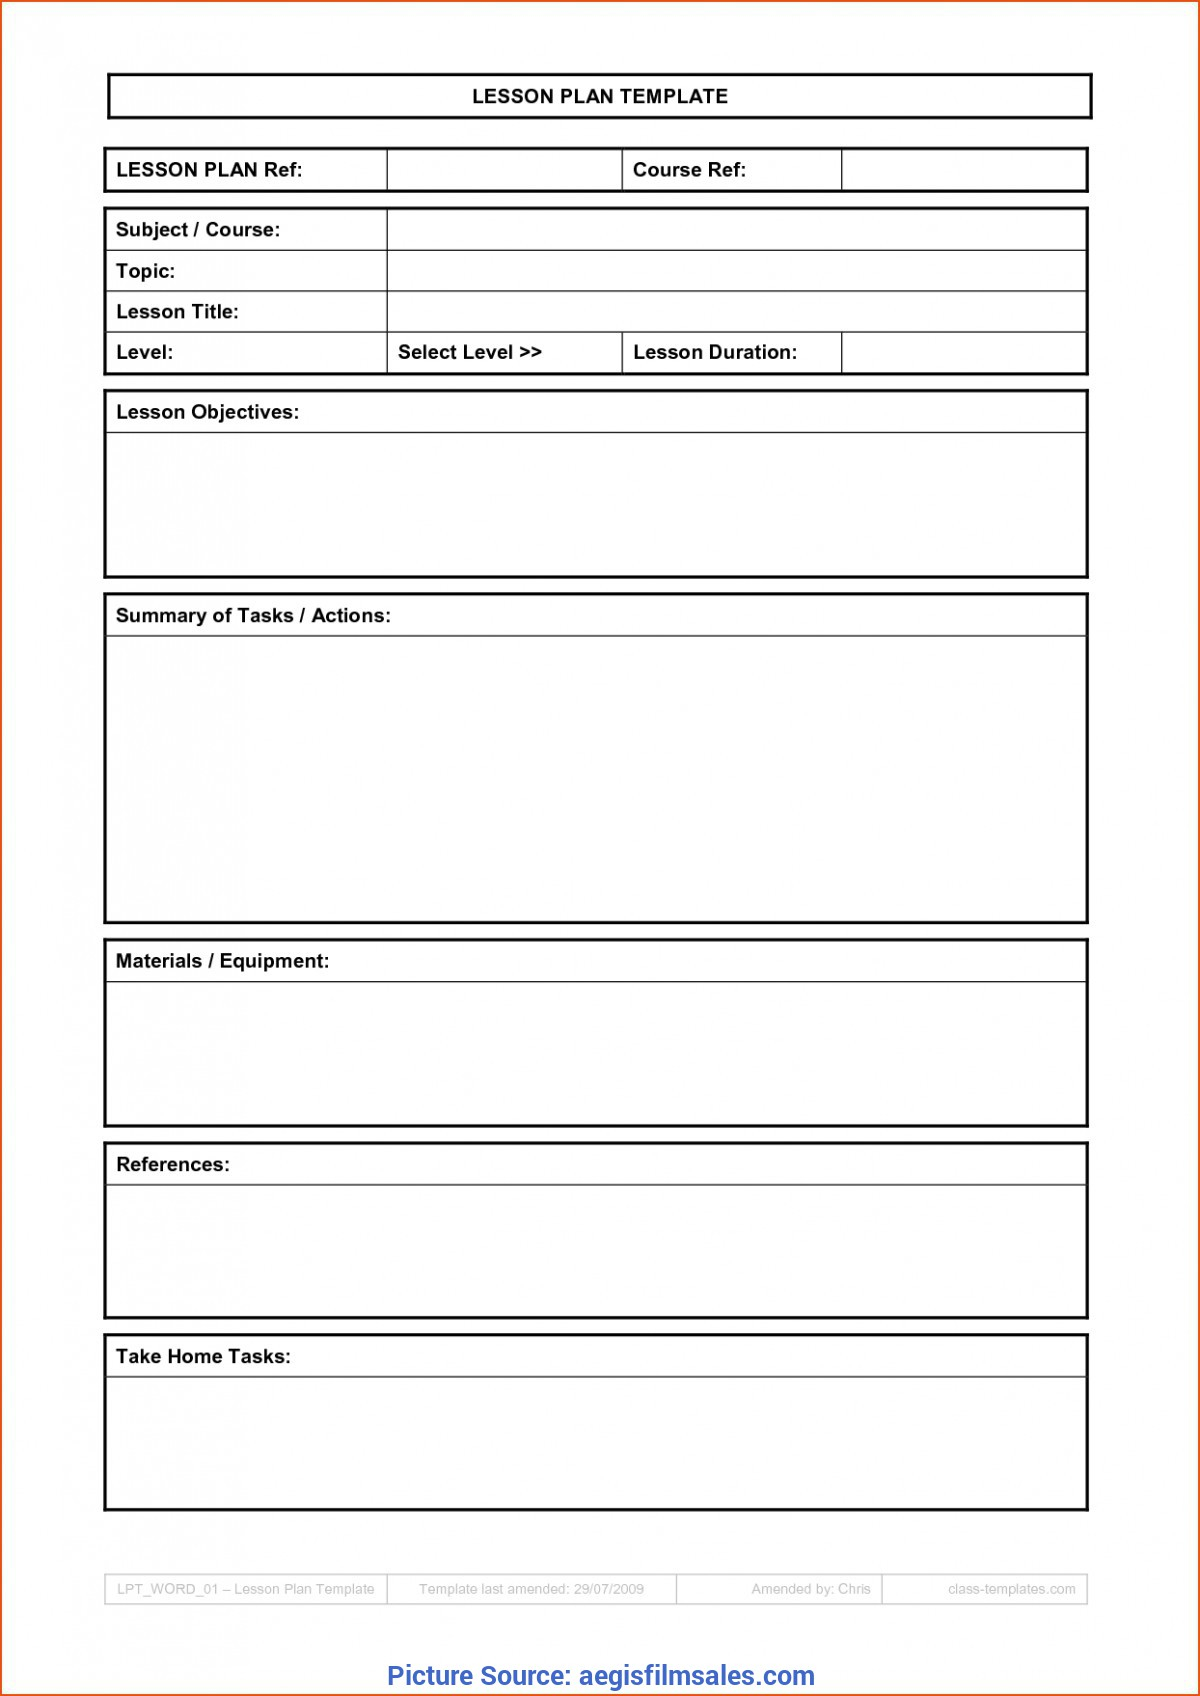 Typical Simple Blank Lesson Plan Template Basic Lesson Plan Template intended for Basic Lesson Plan Template Printable